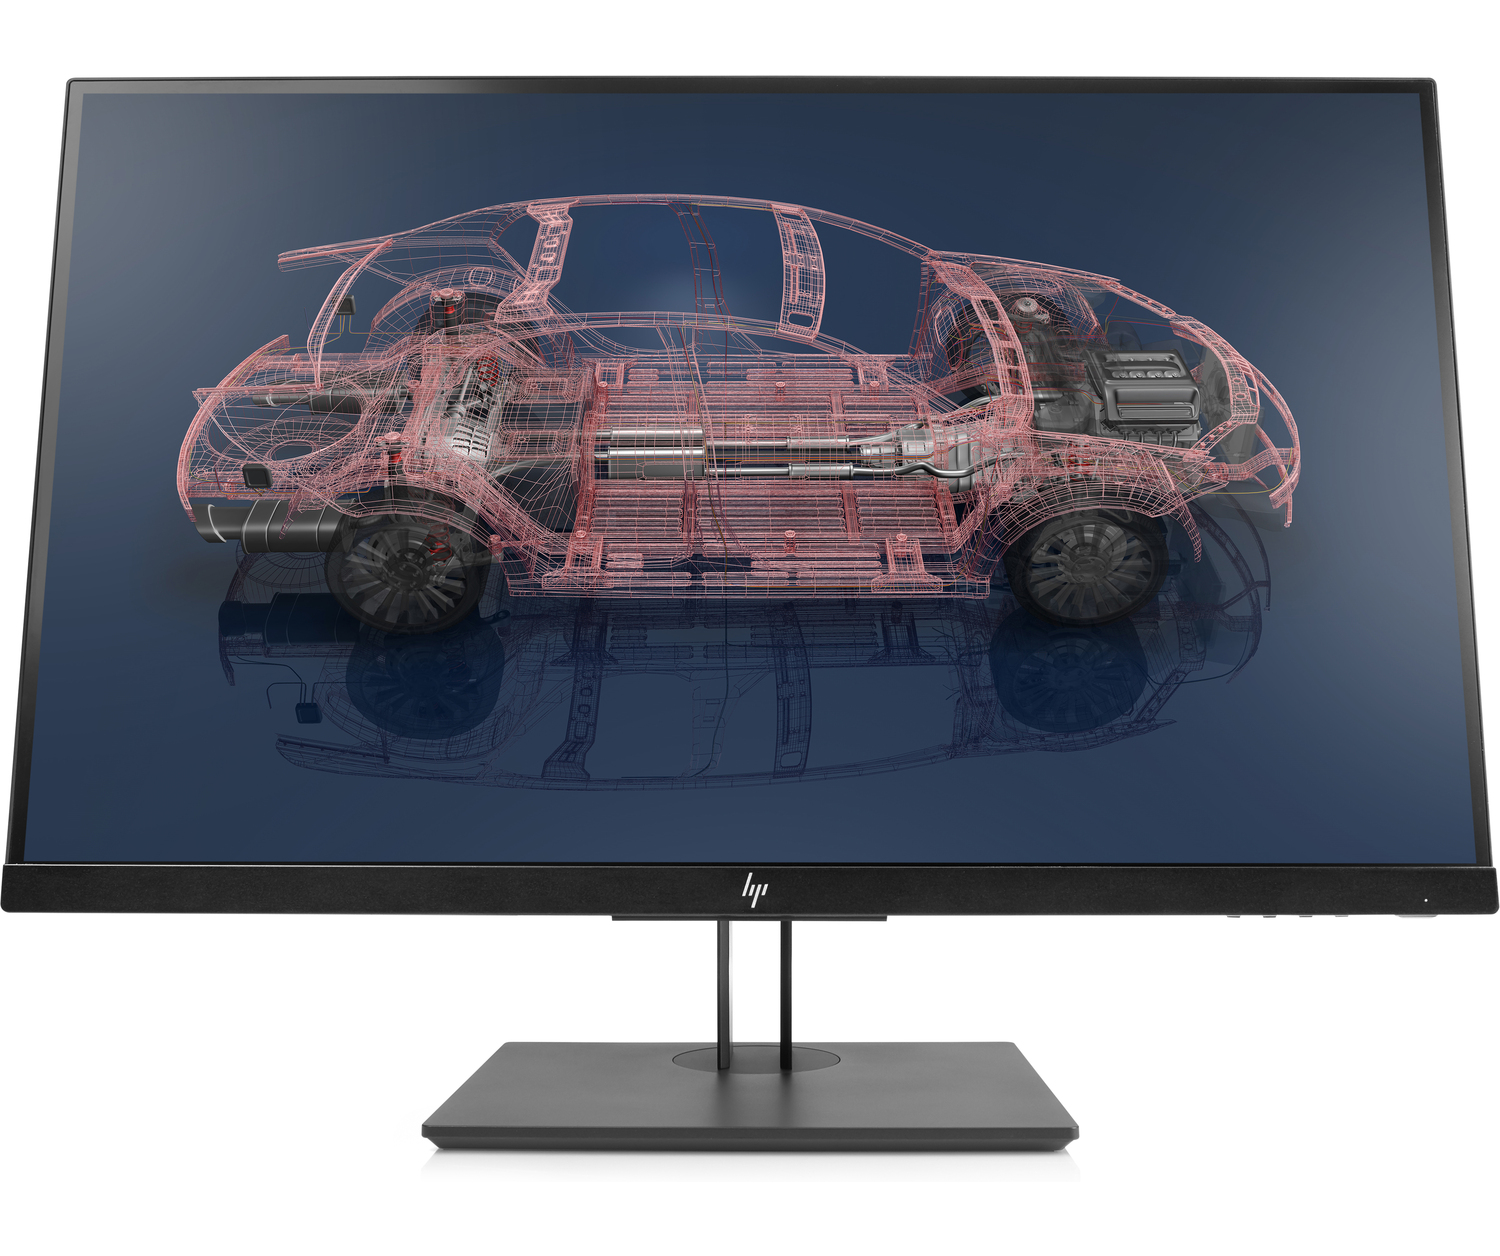 Hewlett-Packard, Z27N, G2, 27IN, QHD, MONITOR, (16:9),